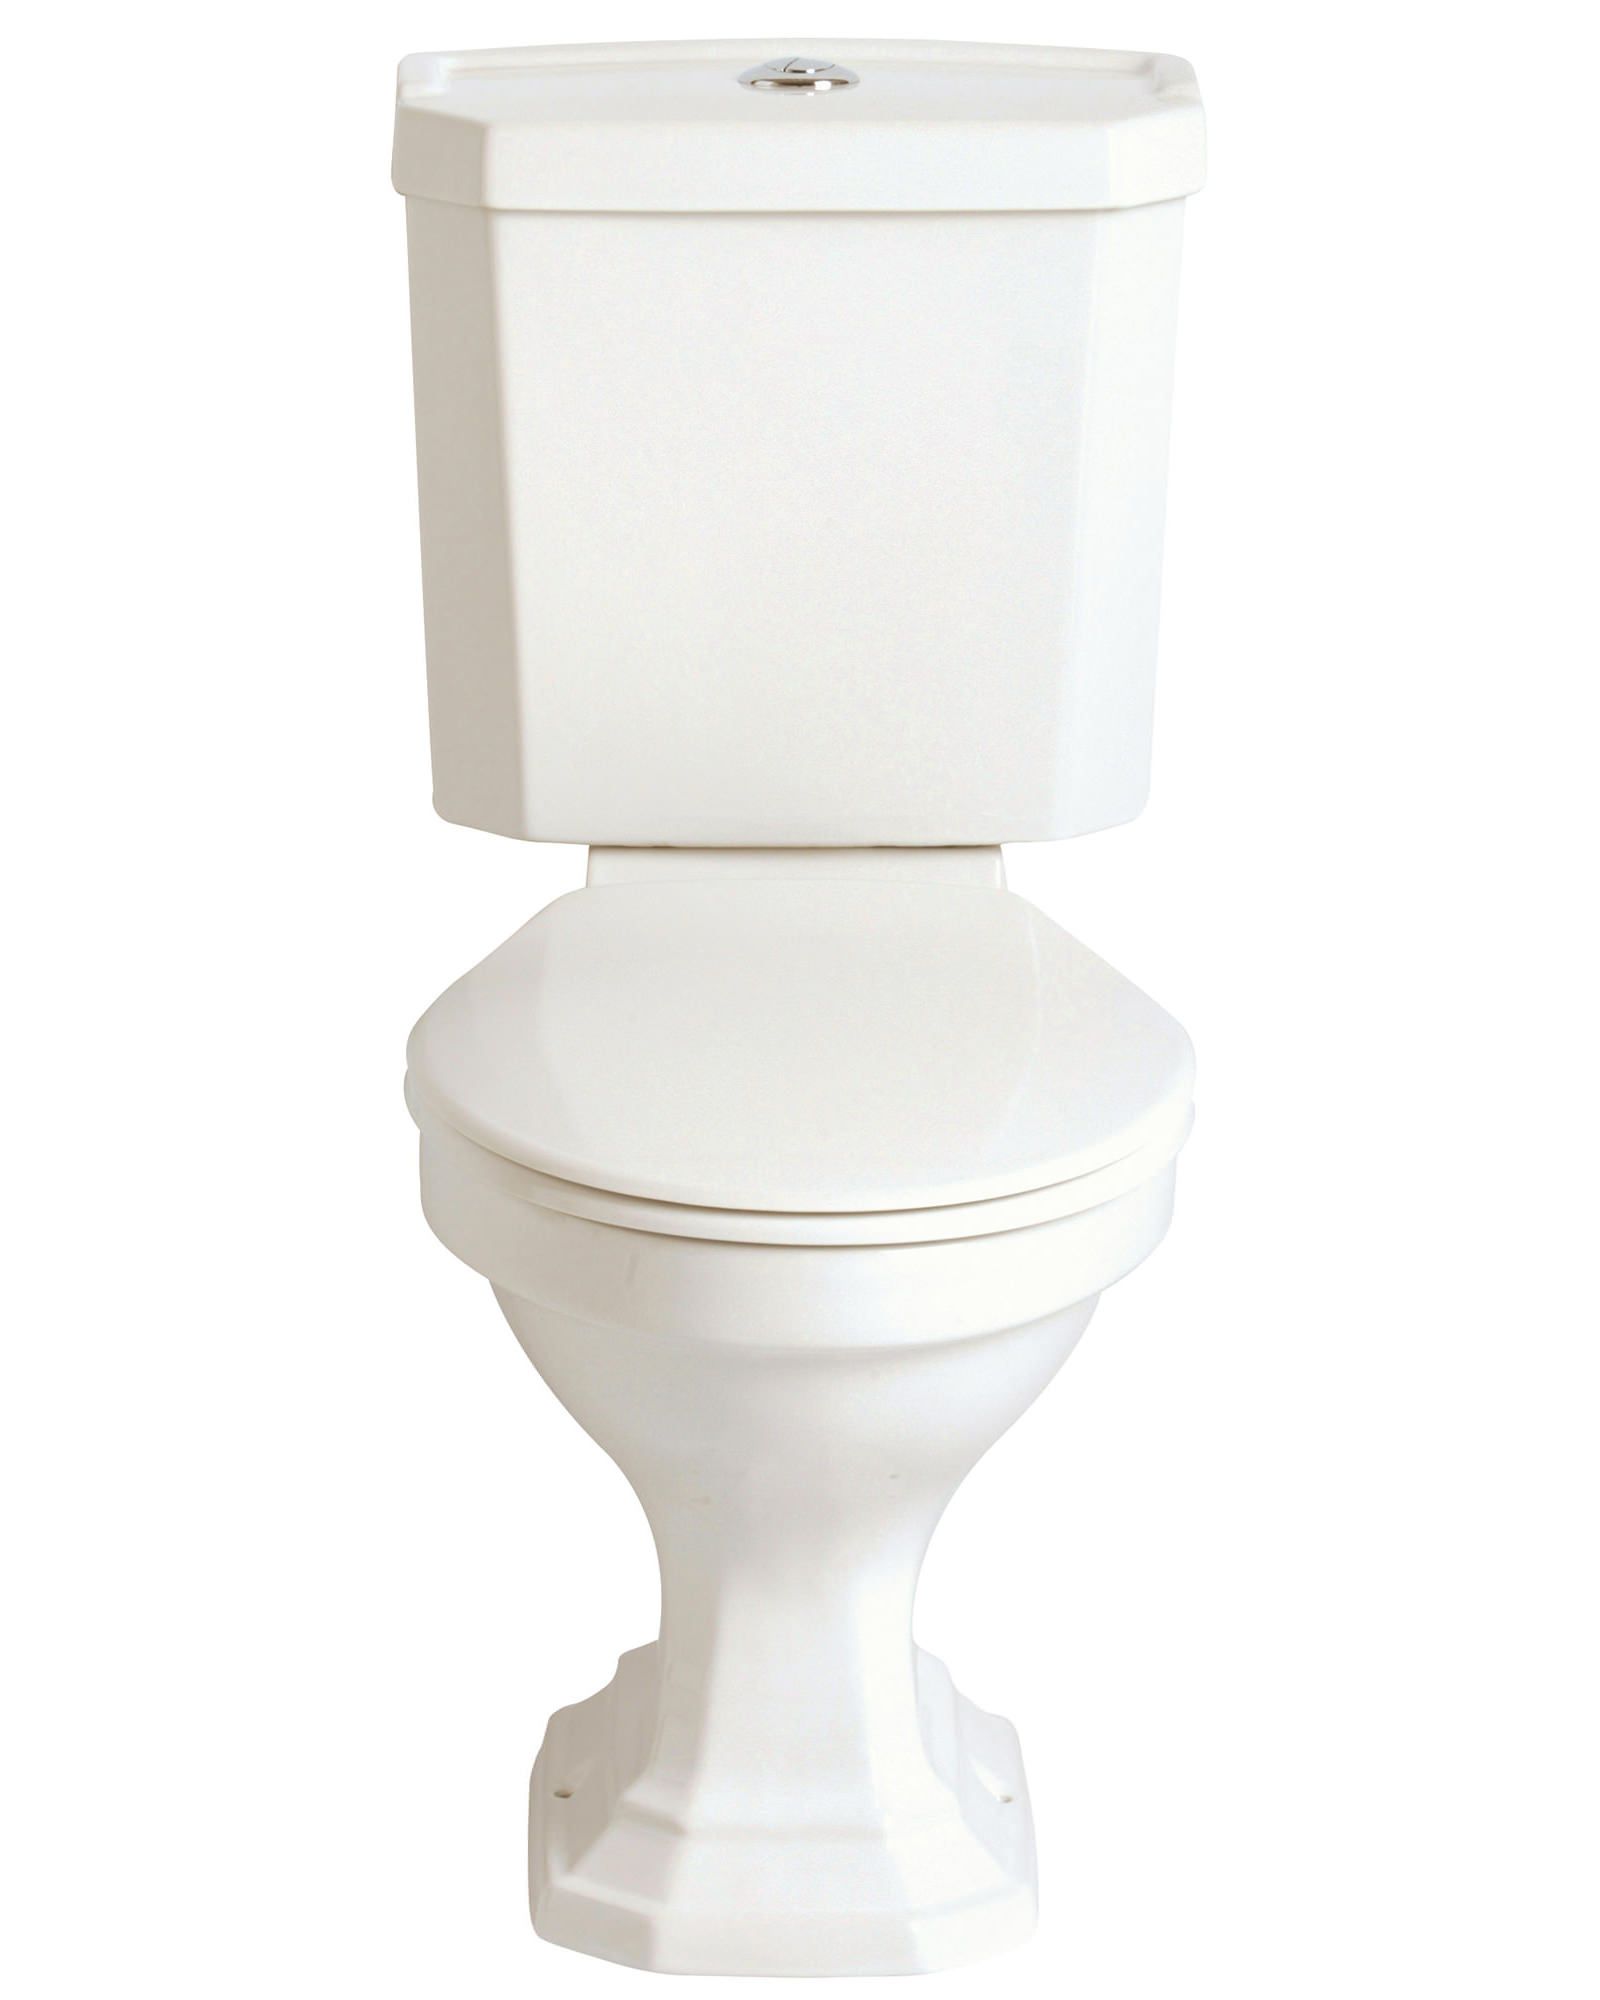 Heritage granley deco close coupled wc and portrait cistern 700mm - Wc opgeschort deco ...